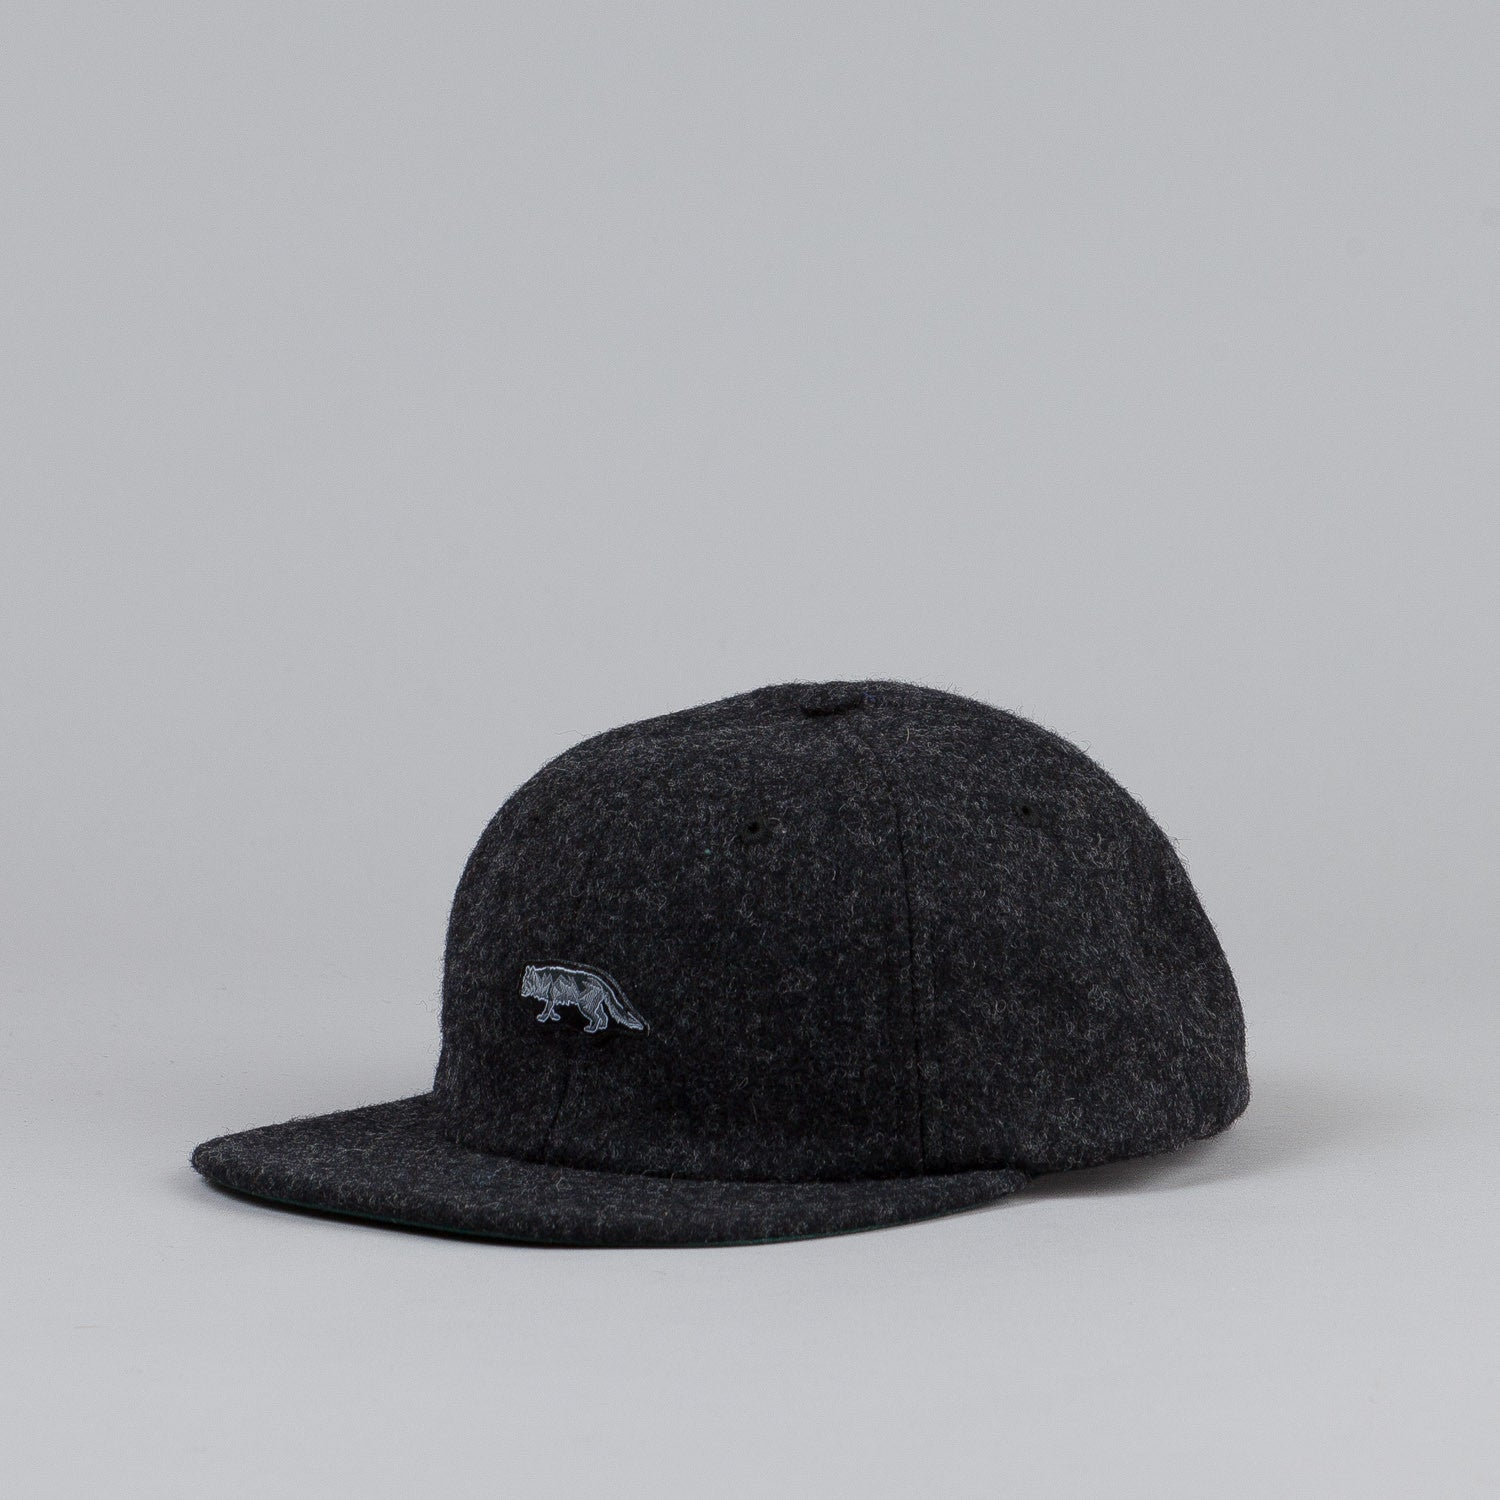 Raised By Wolves Geowulf Polo Cap Charcoal Woolrich